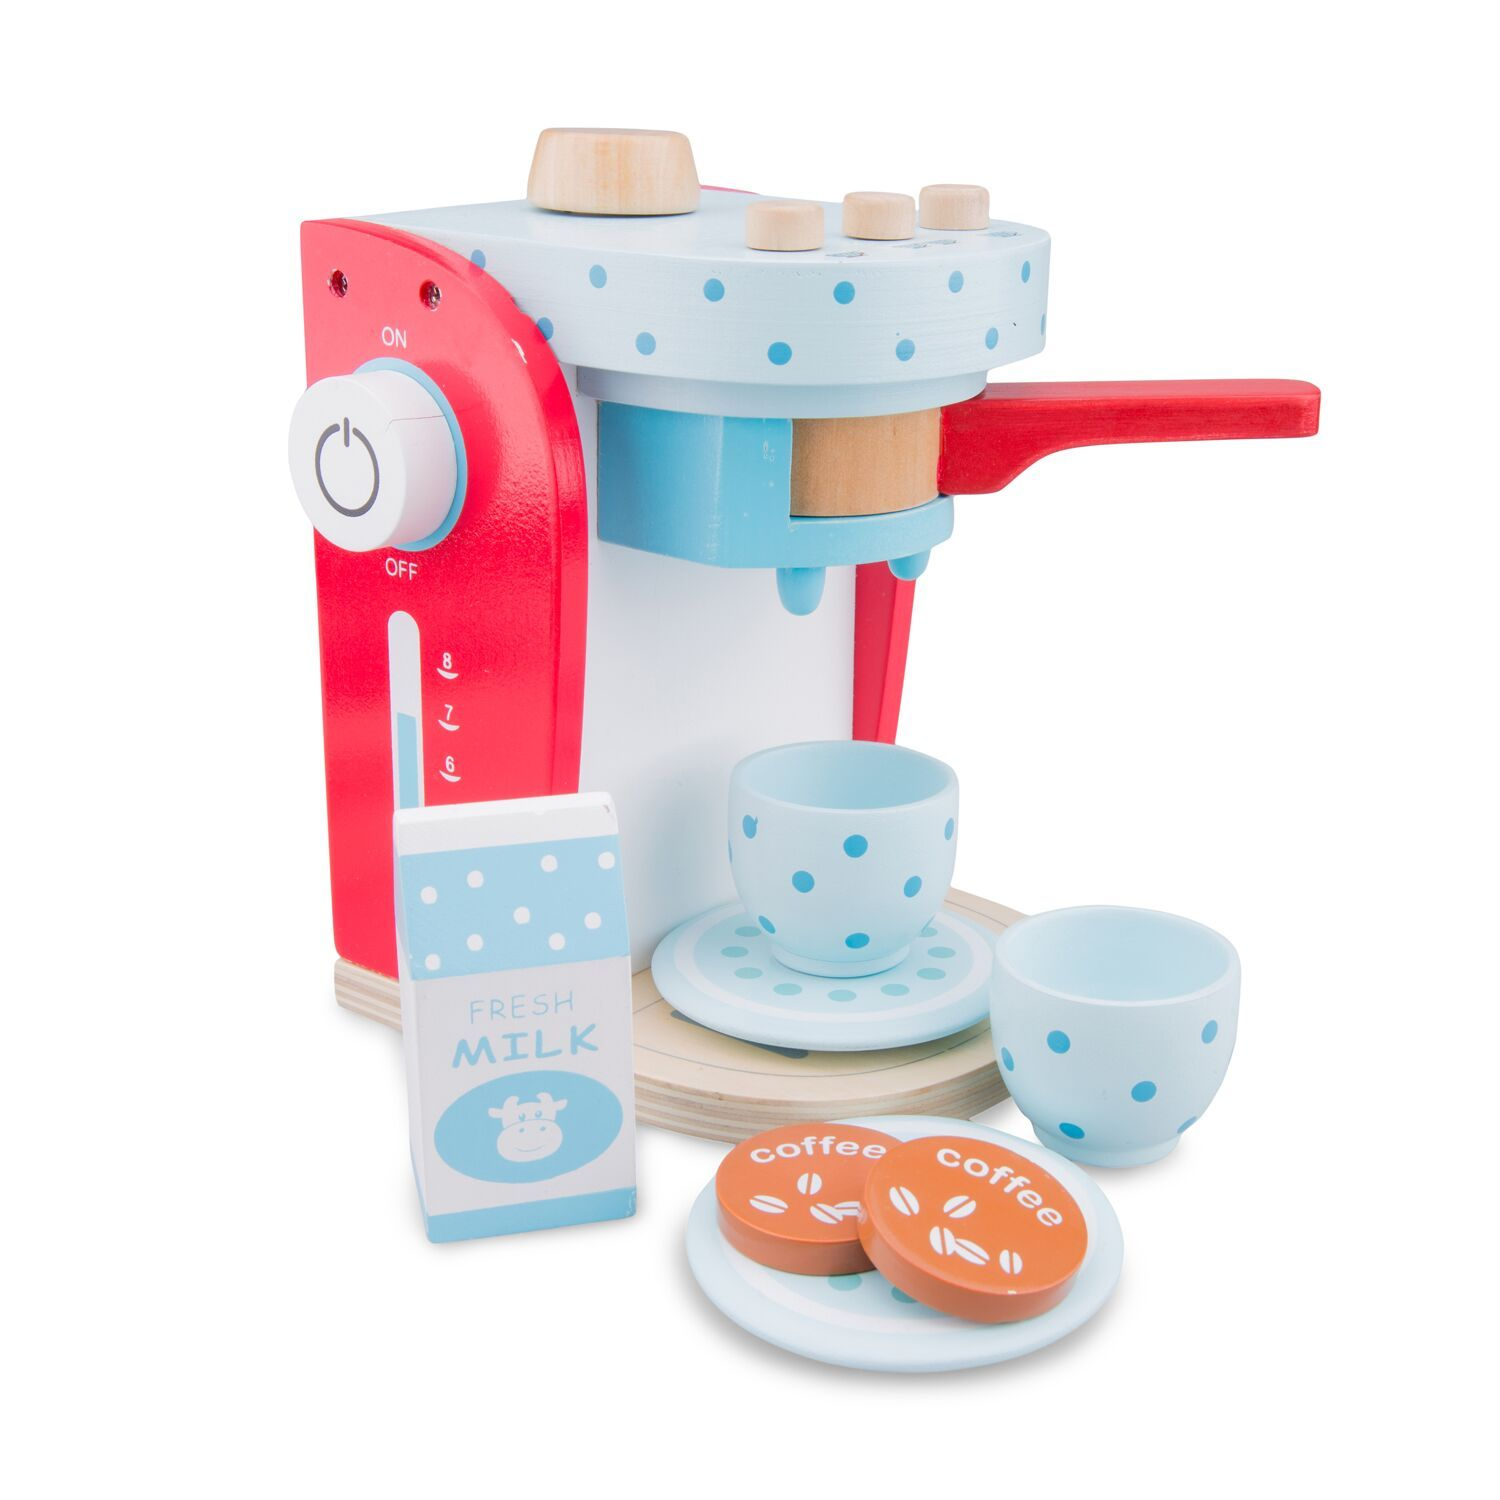 New Classic Toys Coffee Machine New Classic Toys Pretend Play at Little Earth Nest Eco Shop